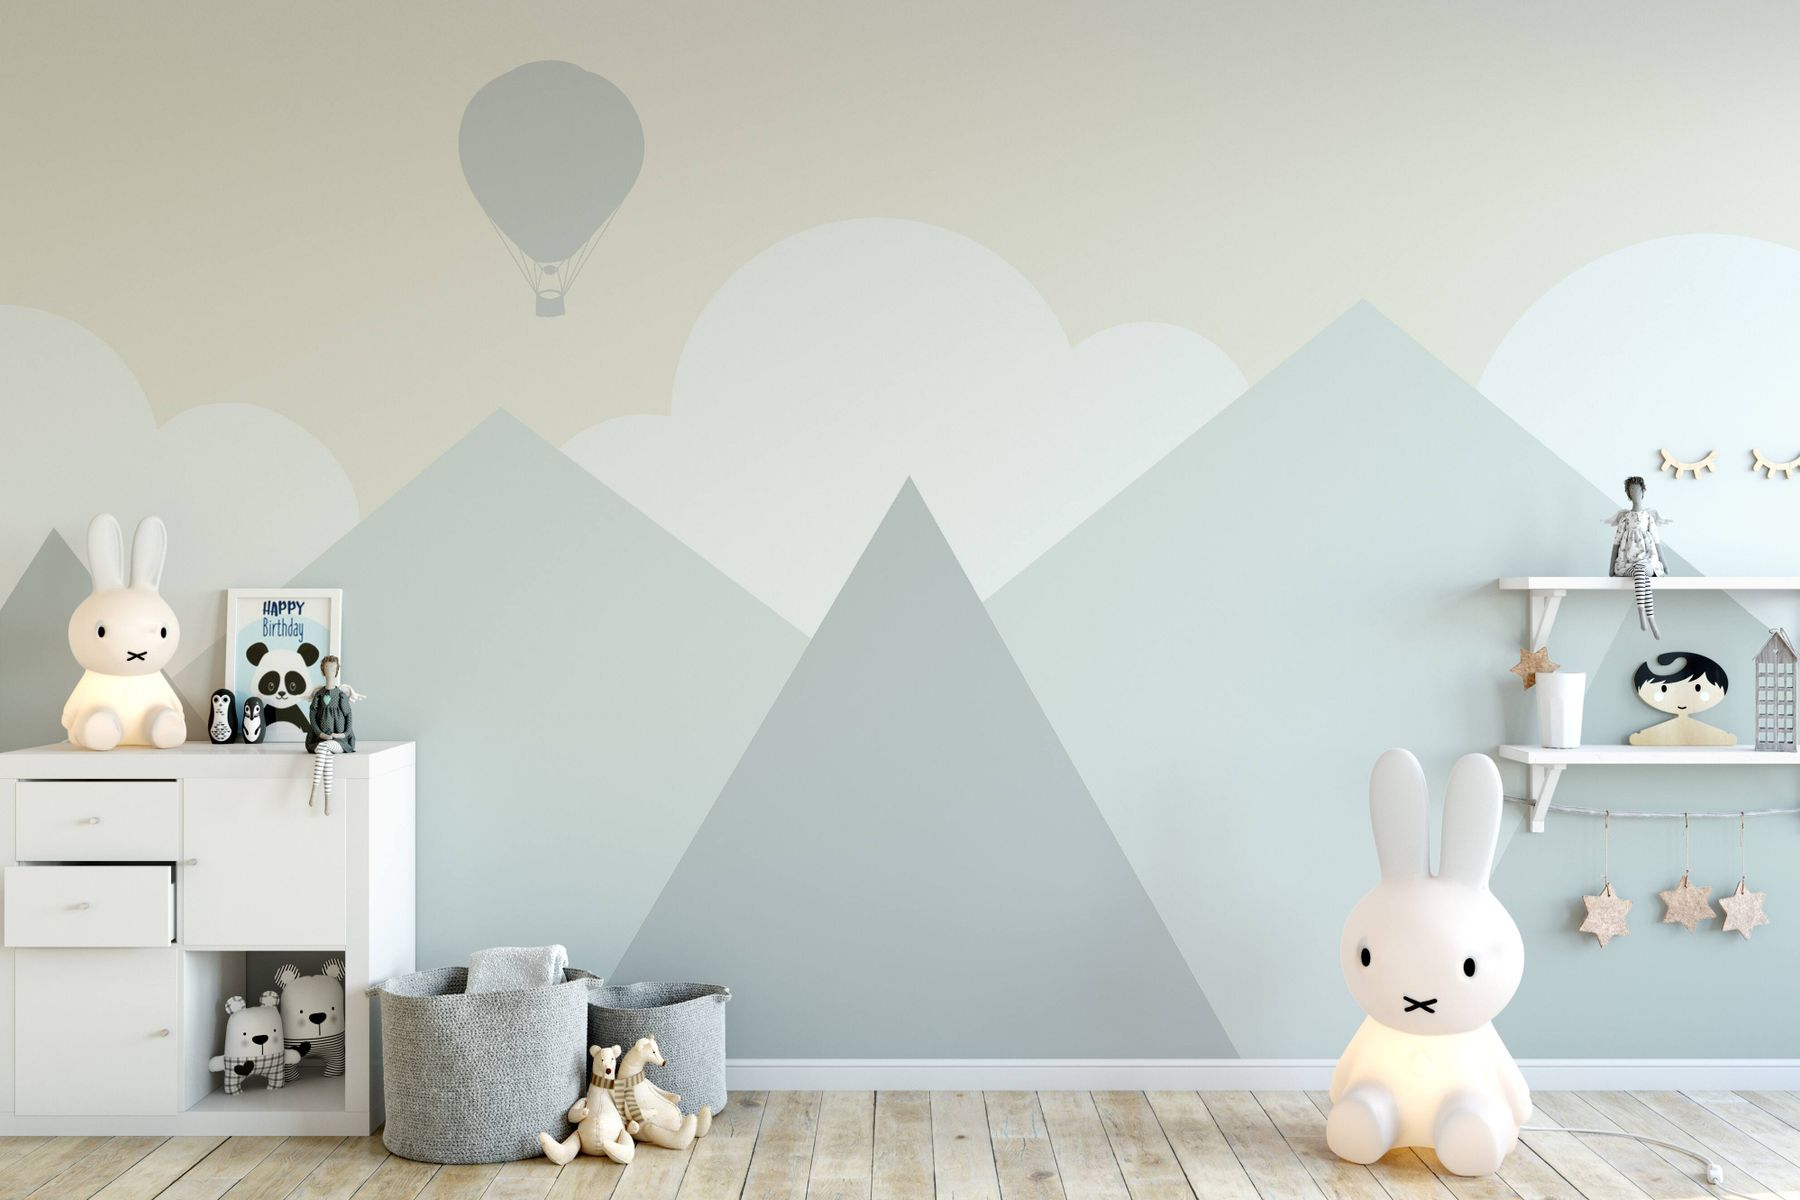 how-to-fix-cracks-in-walls-bright-wall-with-abstract-patterns-and-kids-accessories